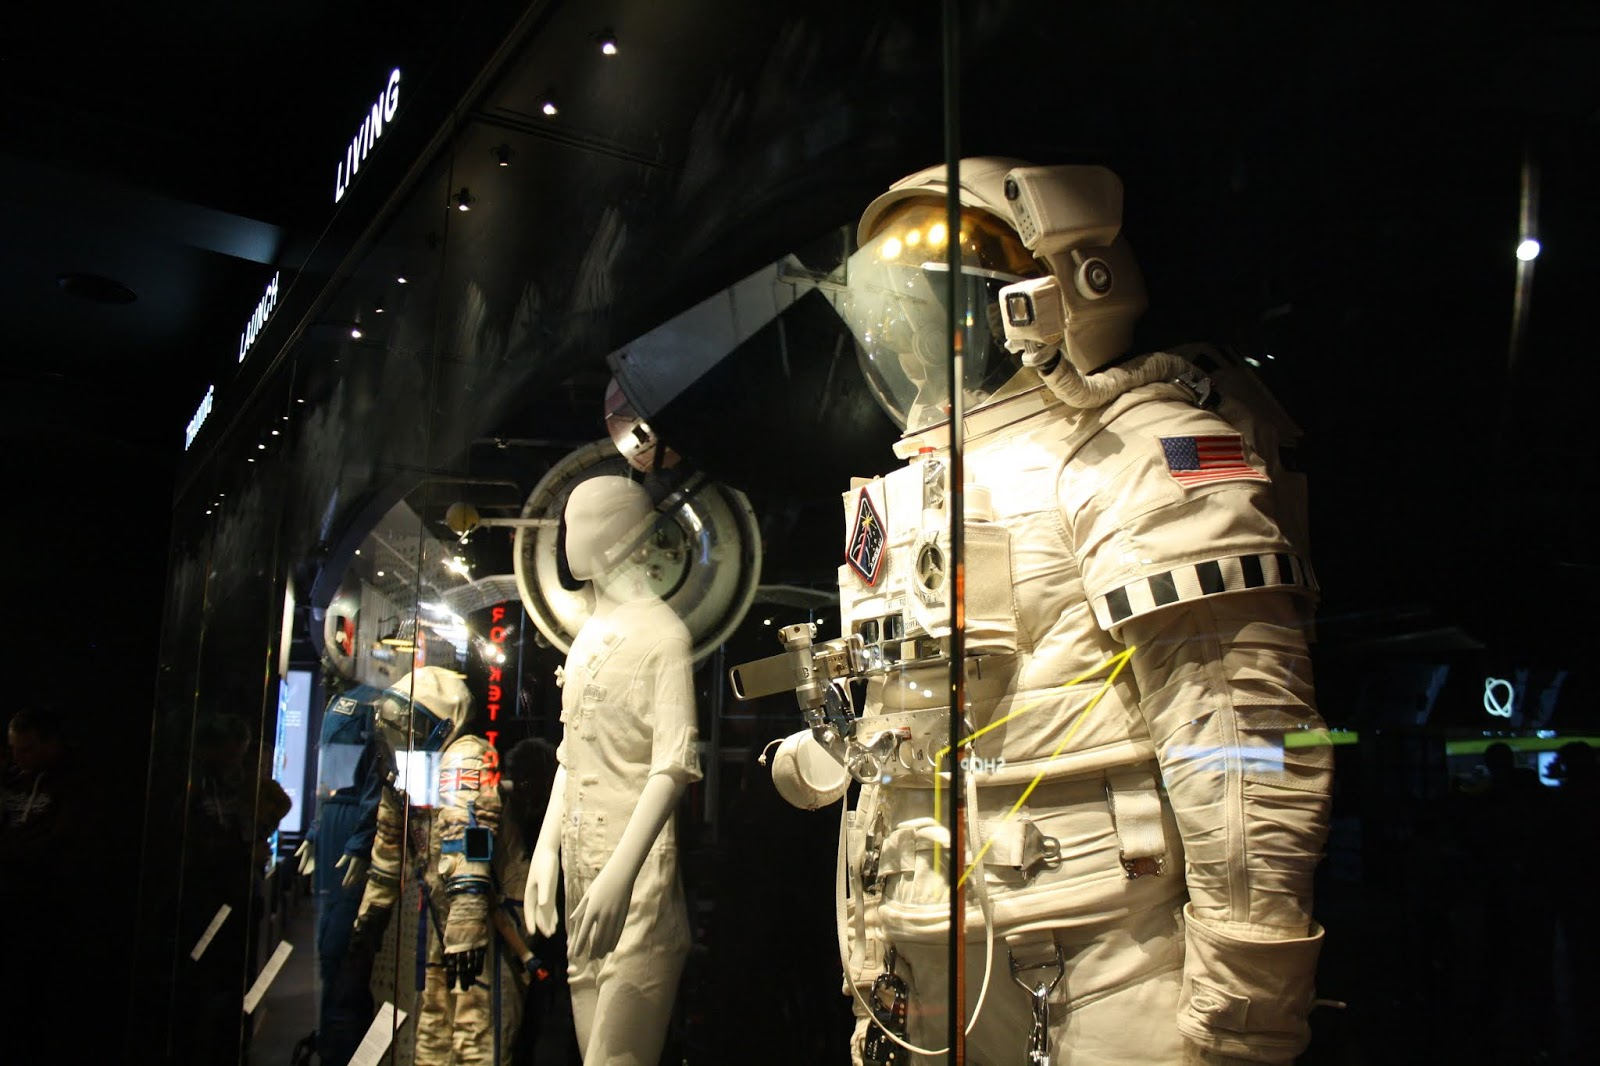 various space suits worn by mannequins in National Space Centre displays